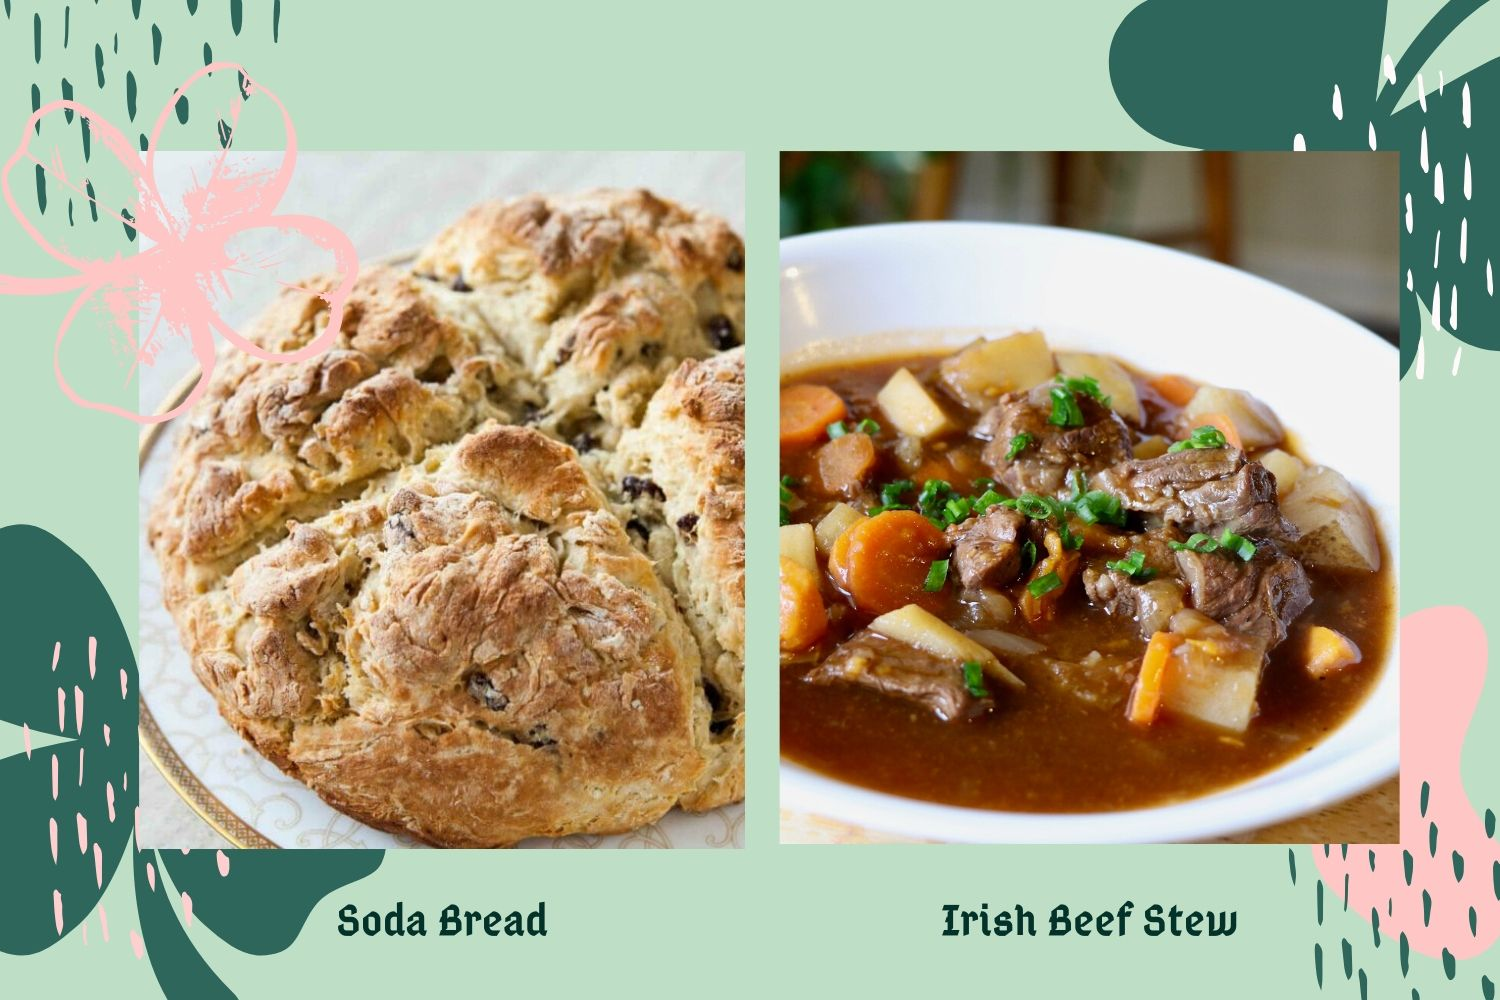 Image of Irish soda bread and beef stew